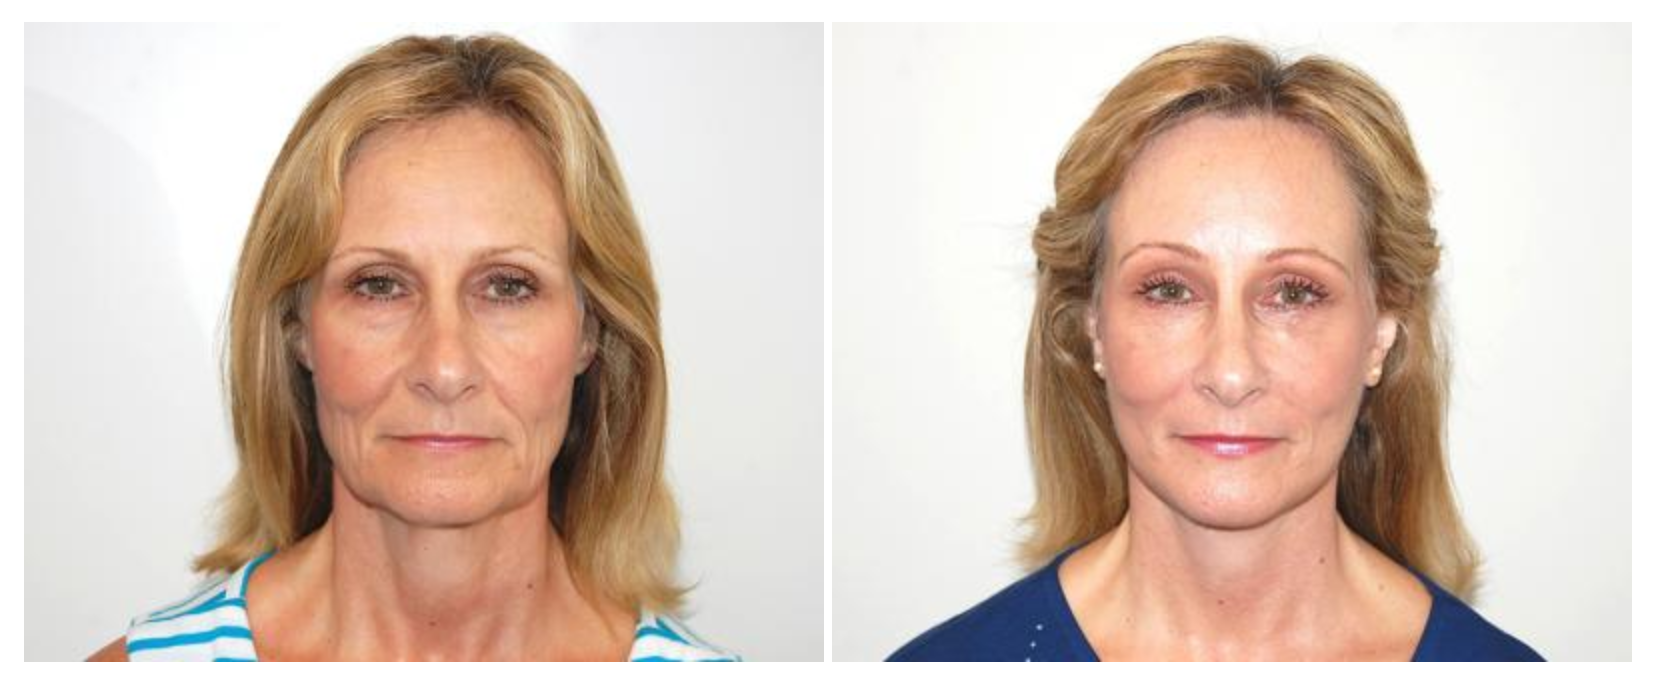 Renaissance Plastic Surgery - Richard H. Lee, MD image 2